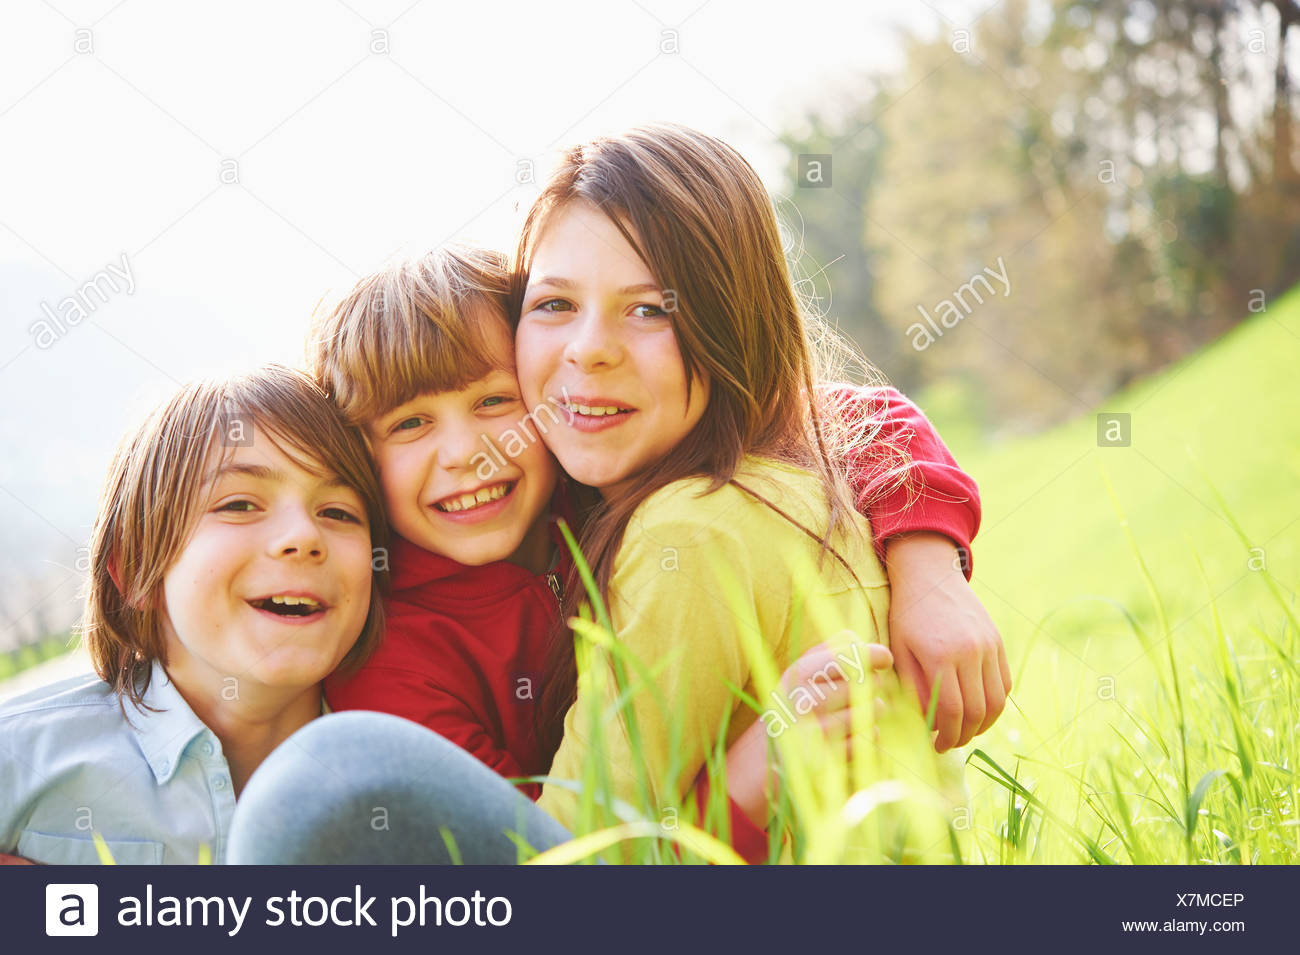 Sister and younger brothers sitting in grassy field - Stock Image